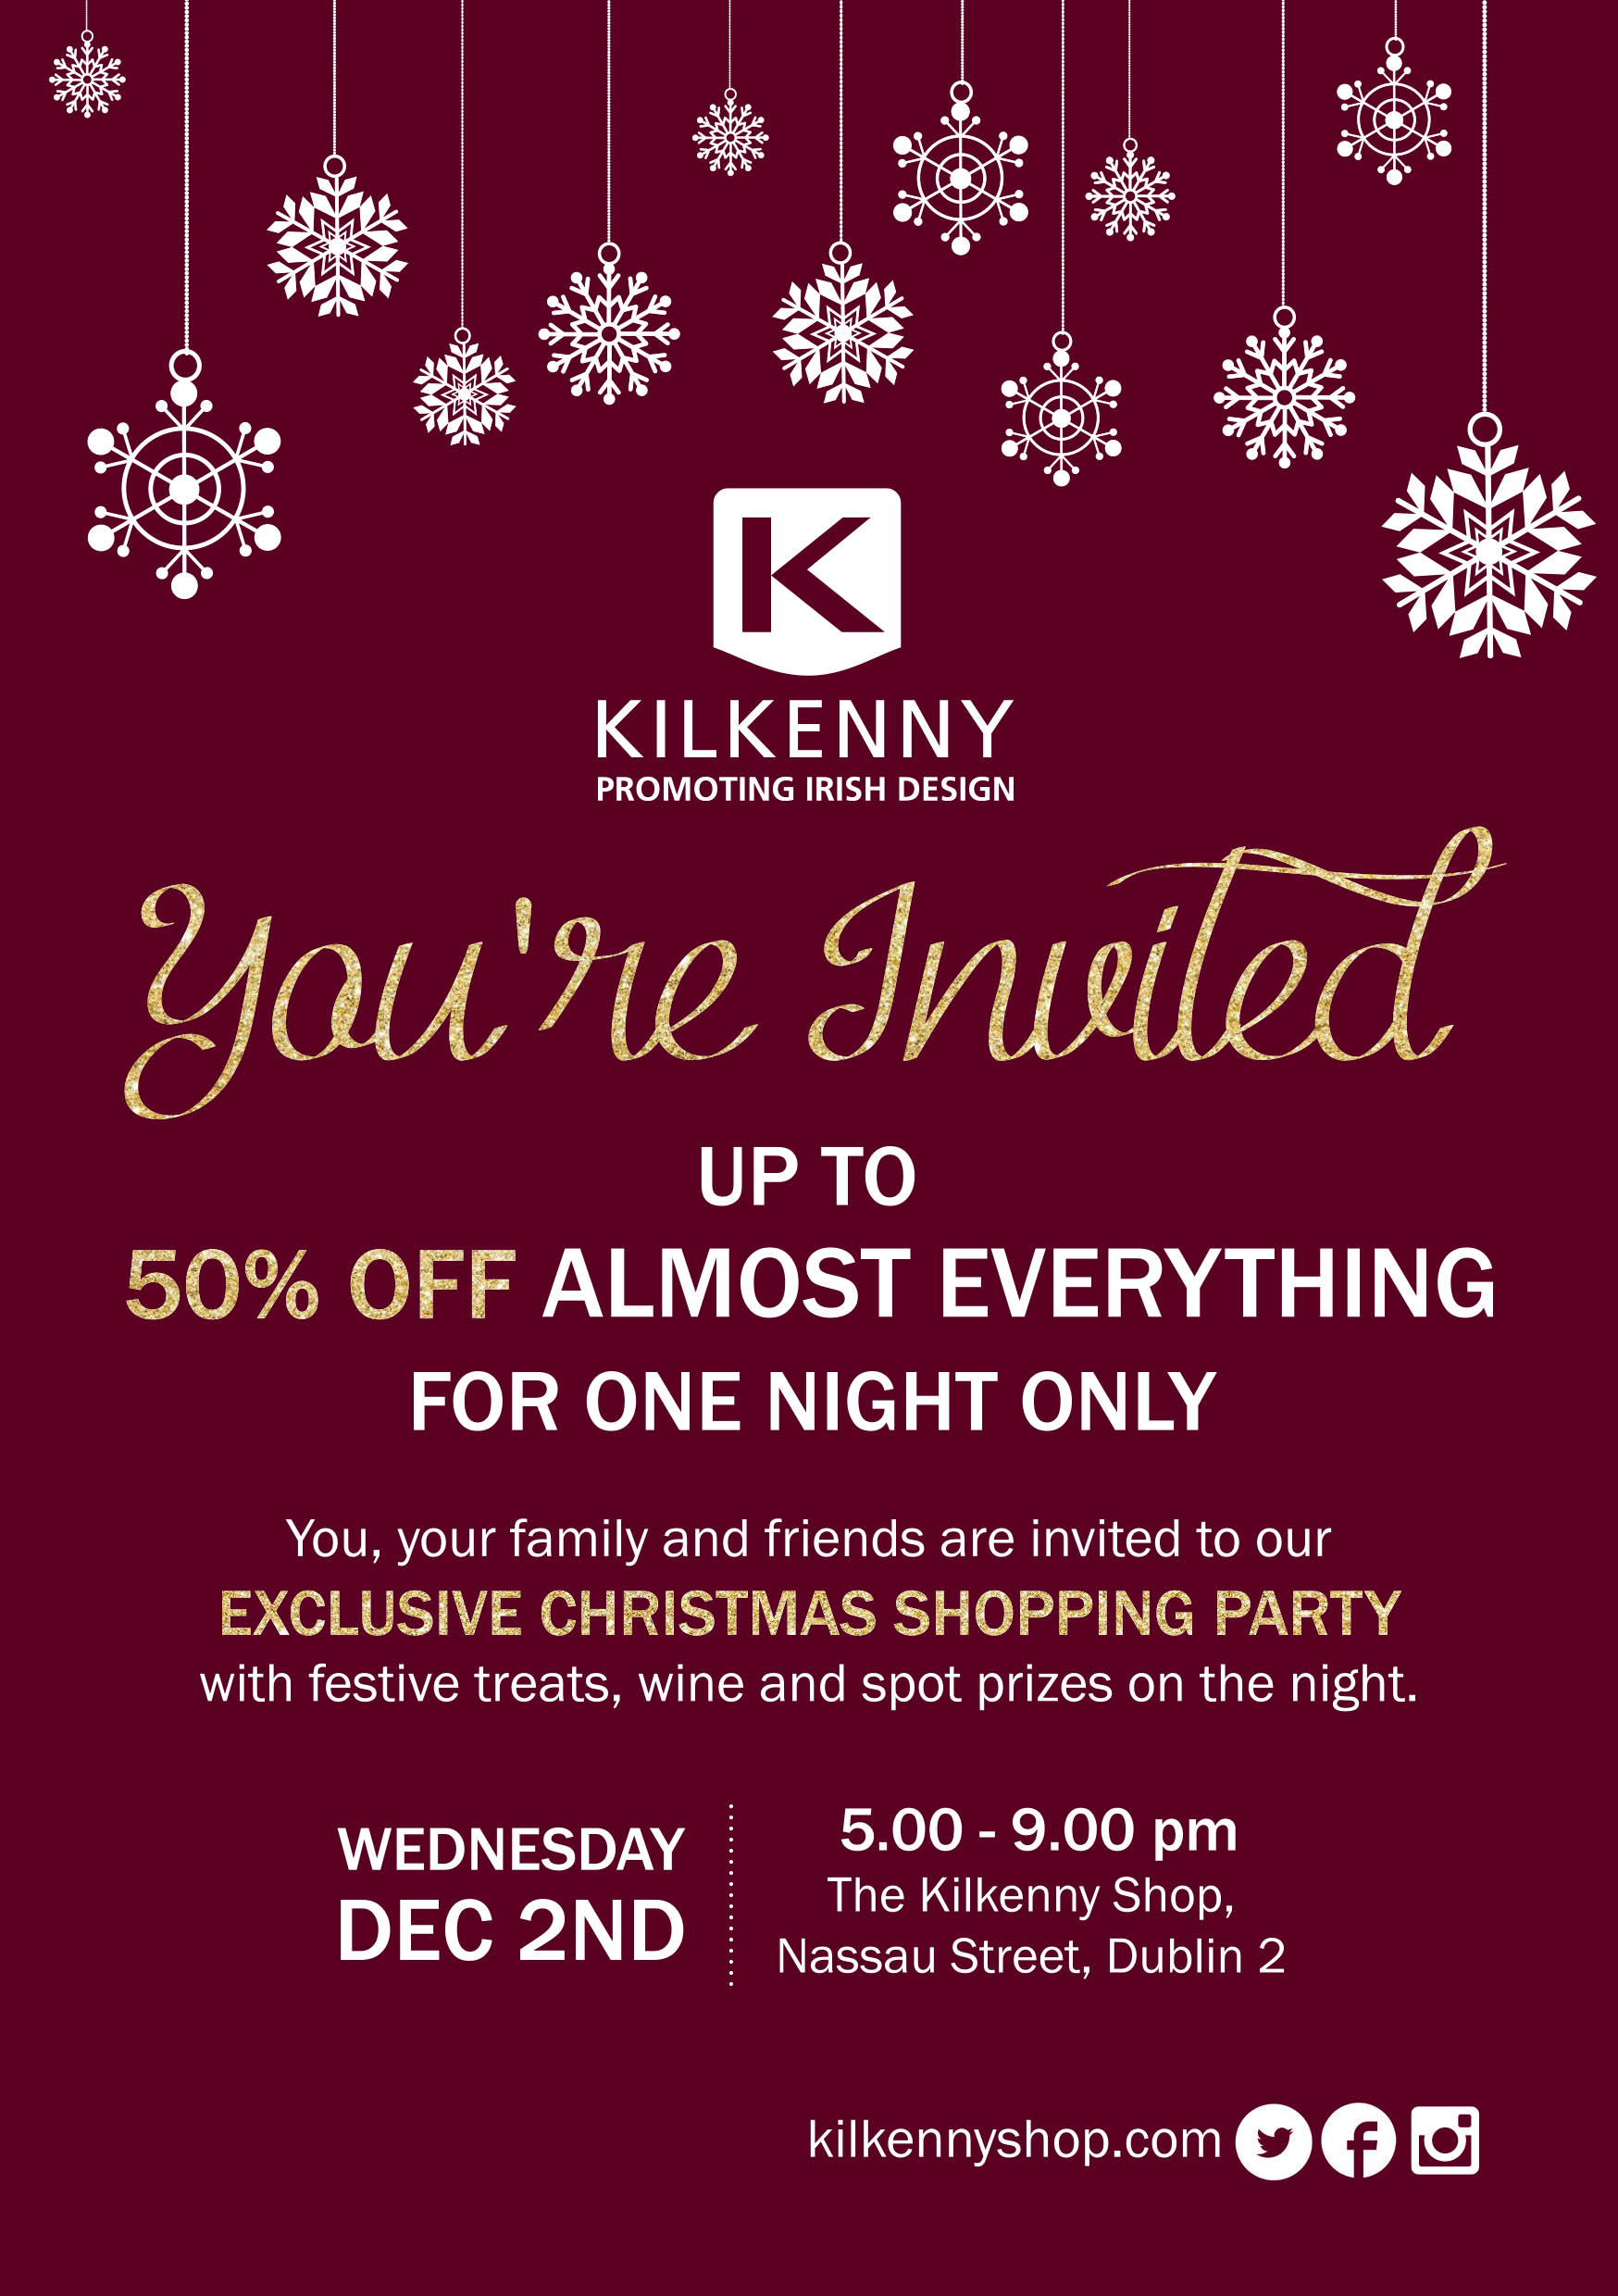 Kilkenny design exclusive 50% off evening